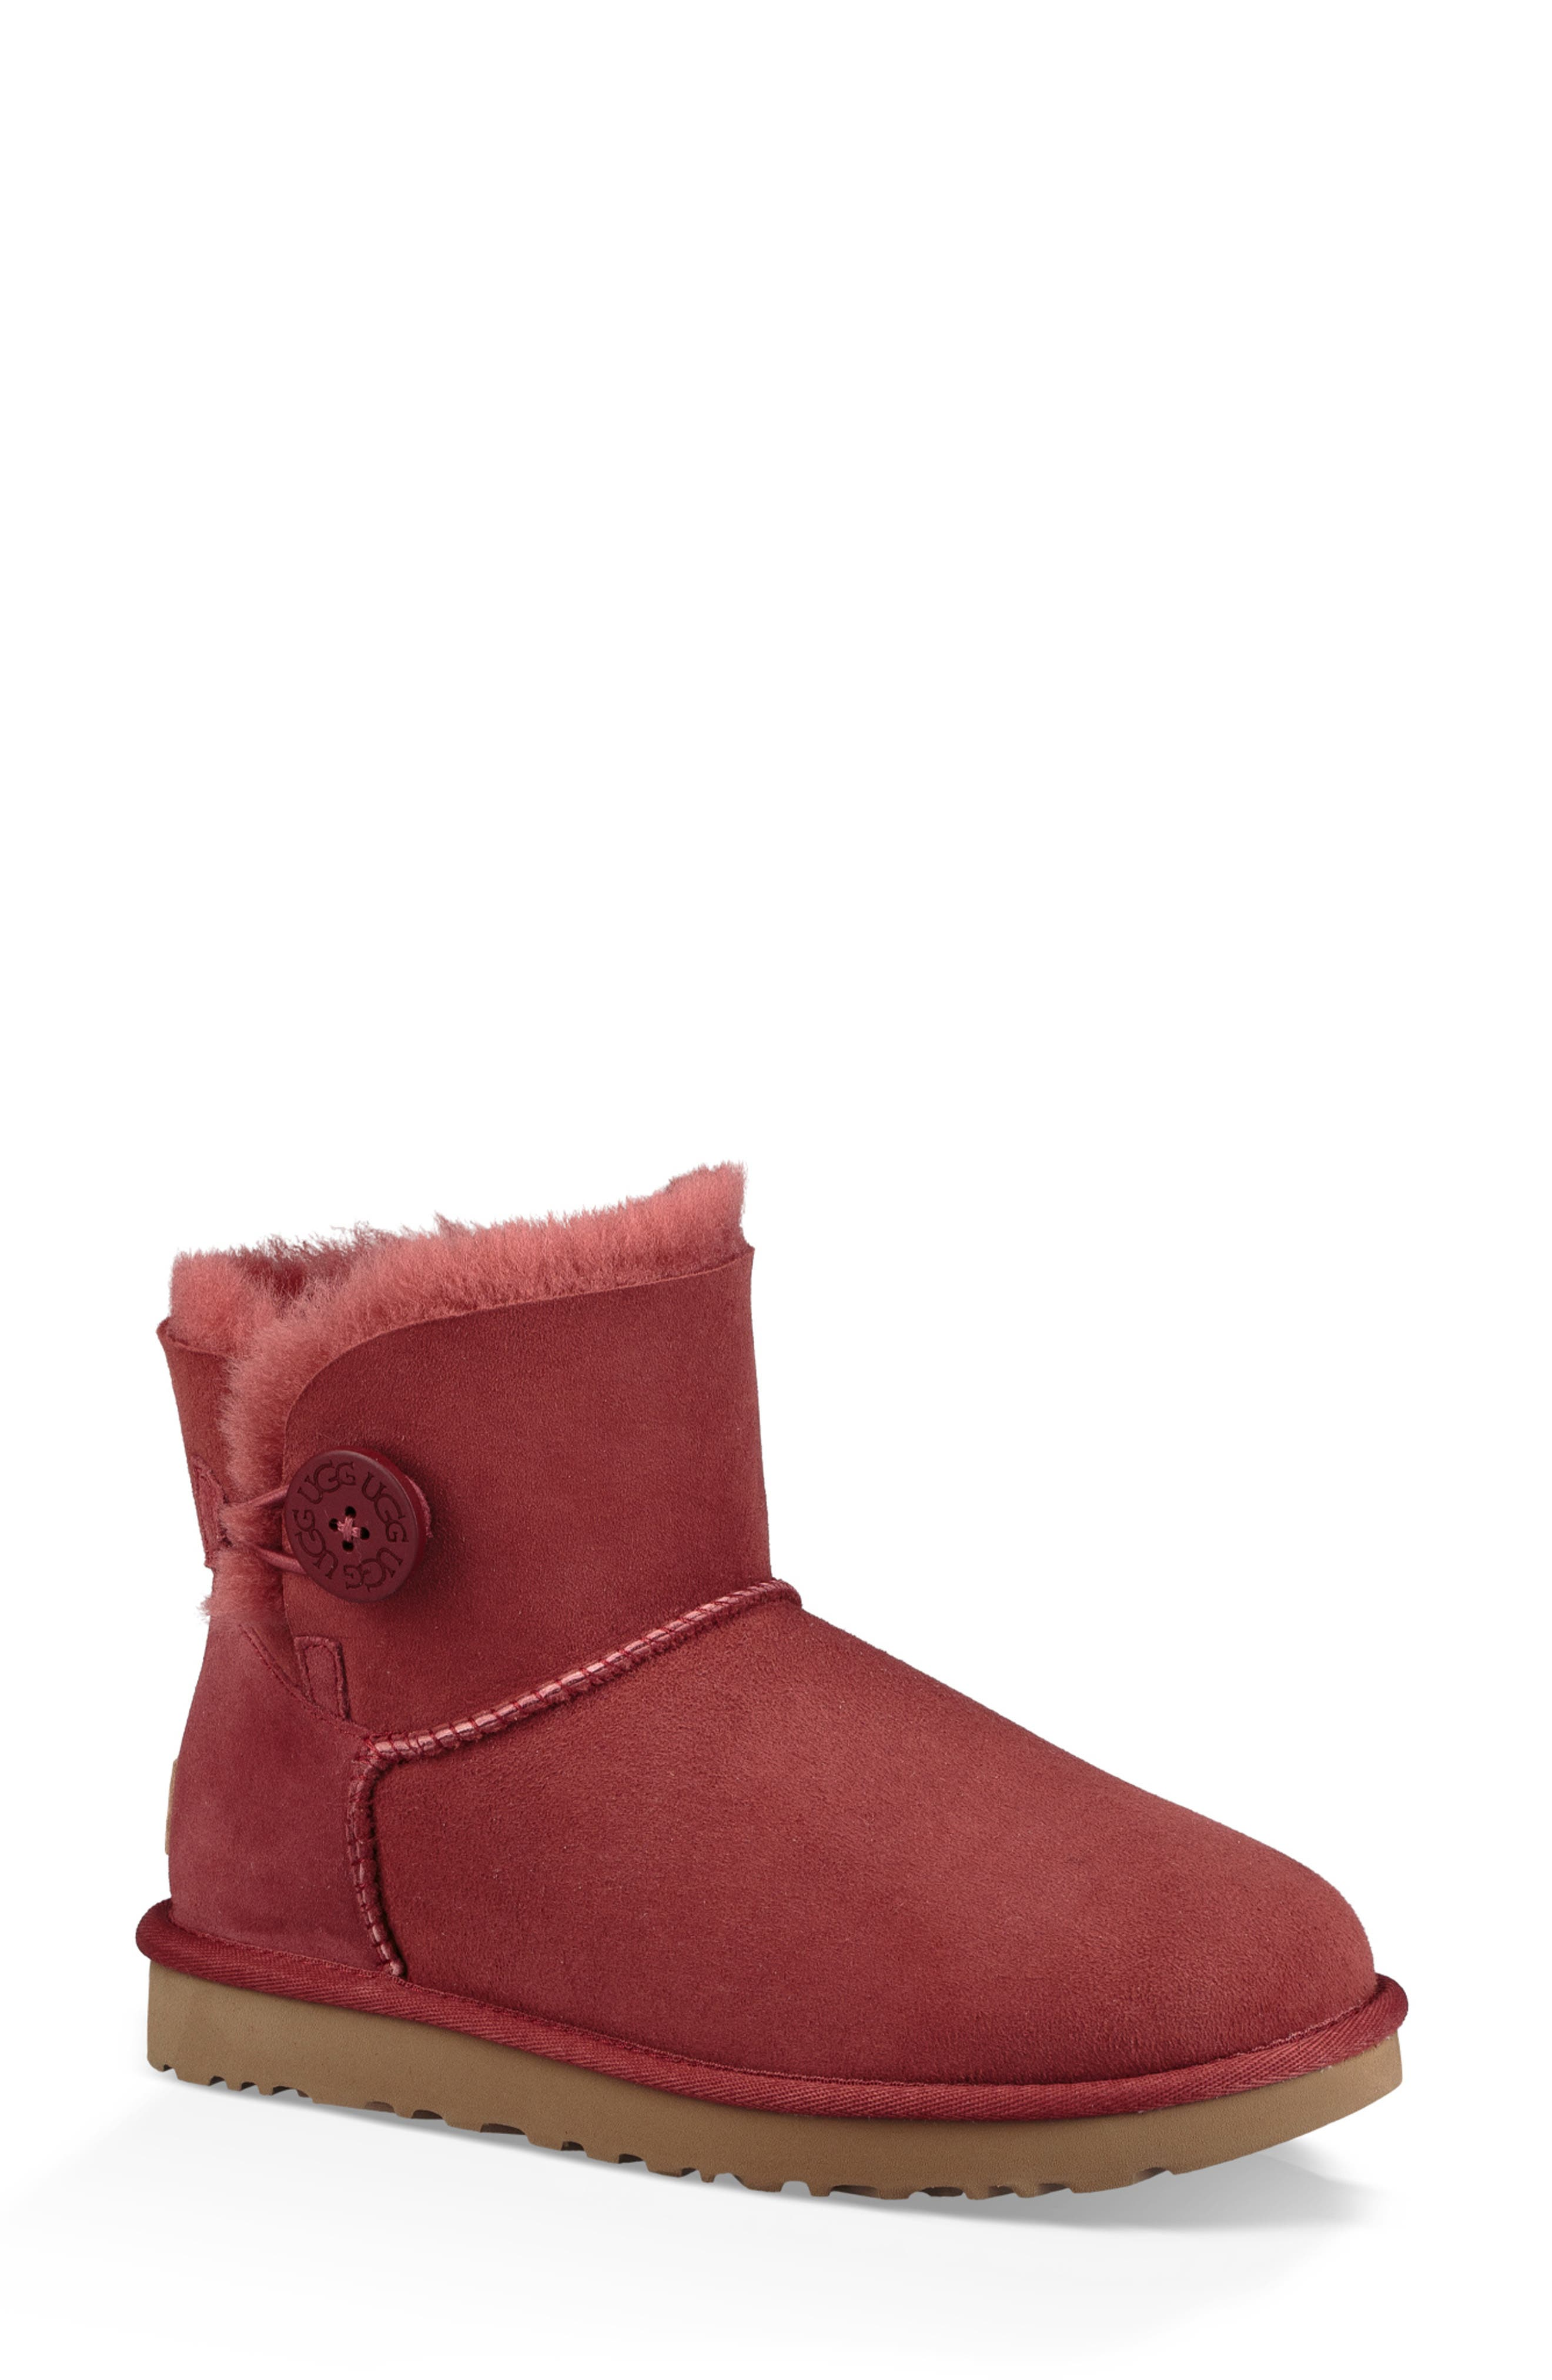 'Mini Bailey Button II' Boot,                         Main,                         color, REDWOOD SUEDE